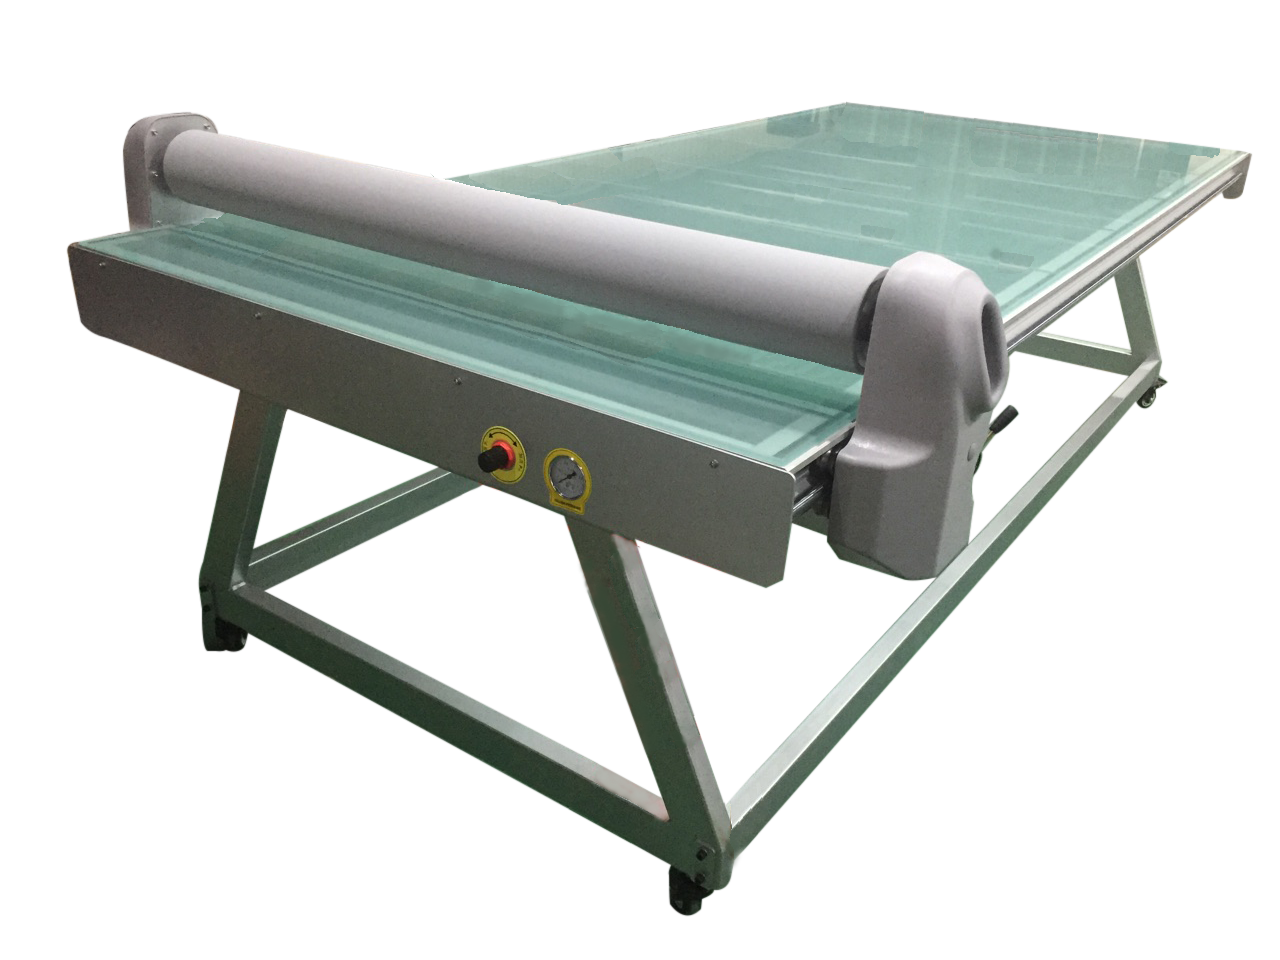 Flatbed application table for print finishing